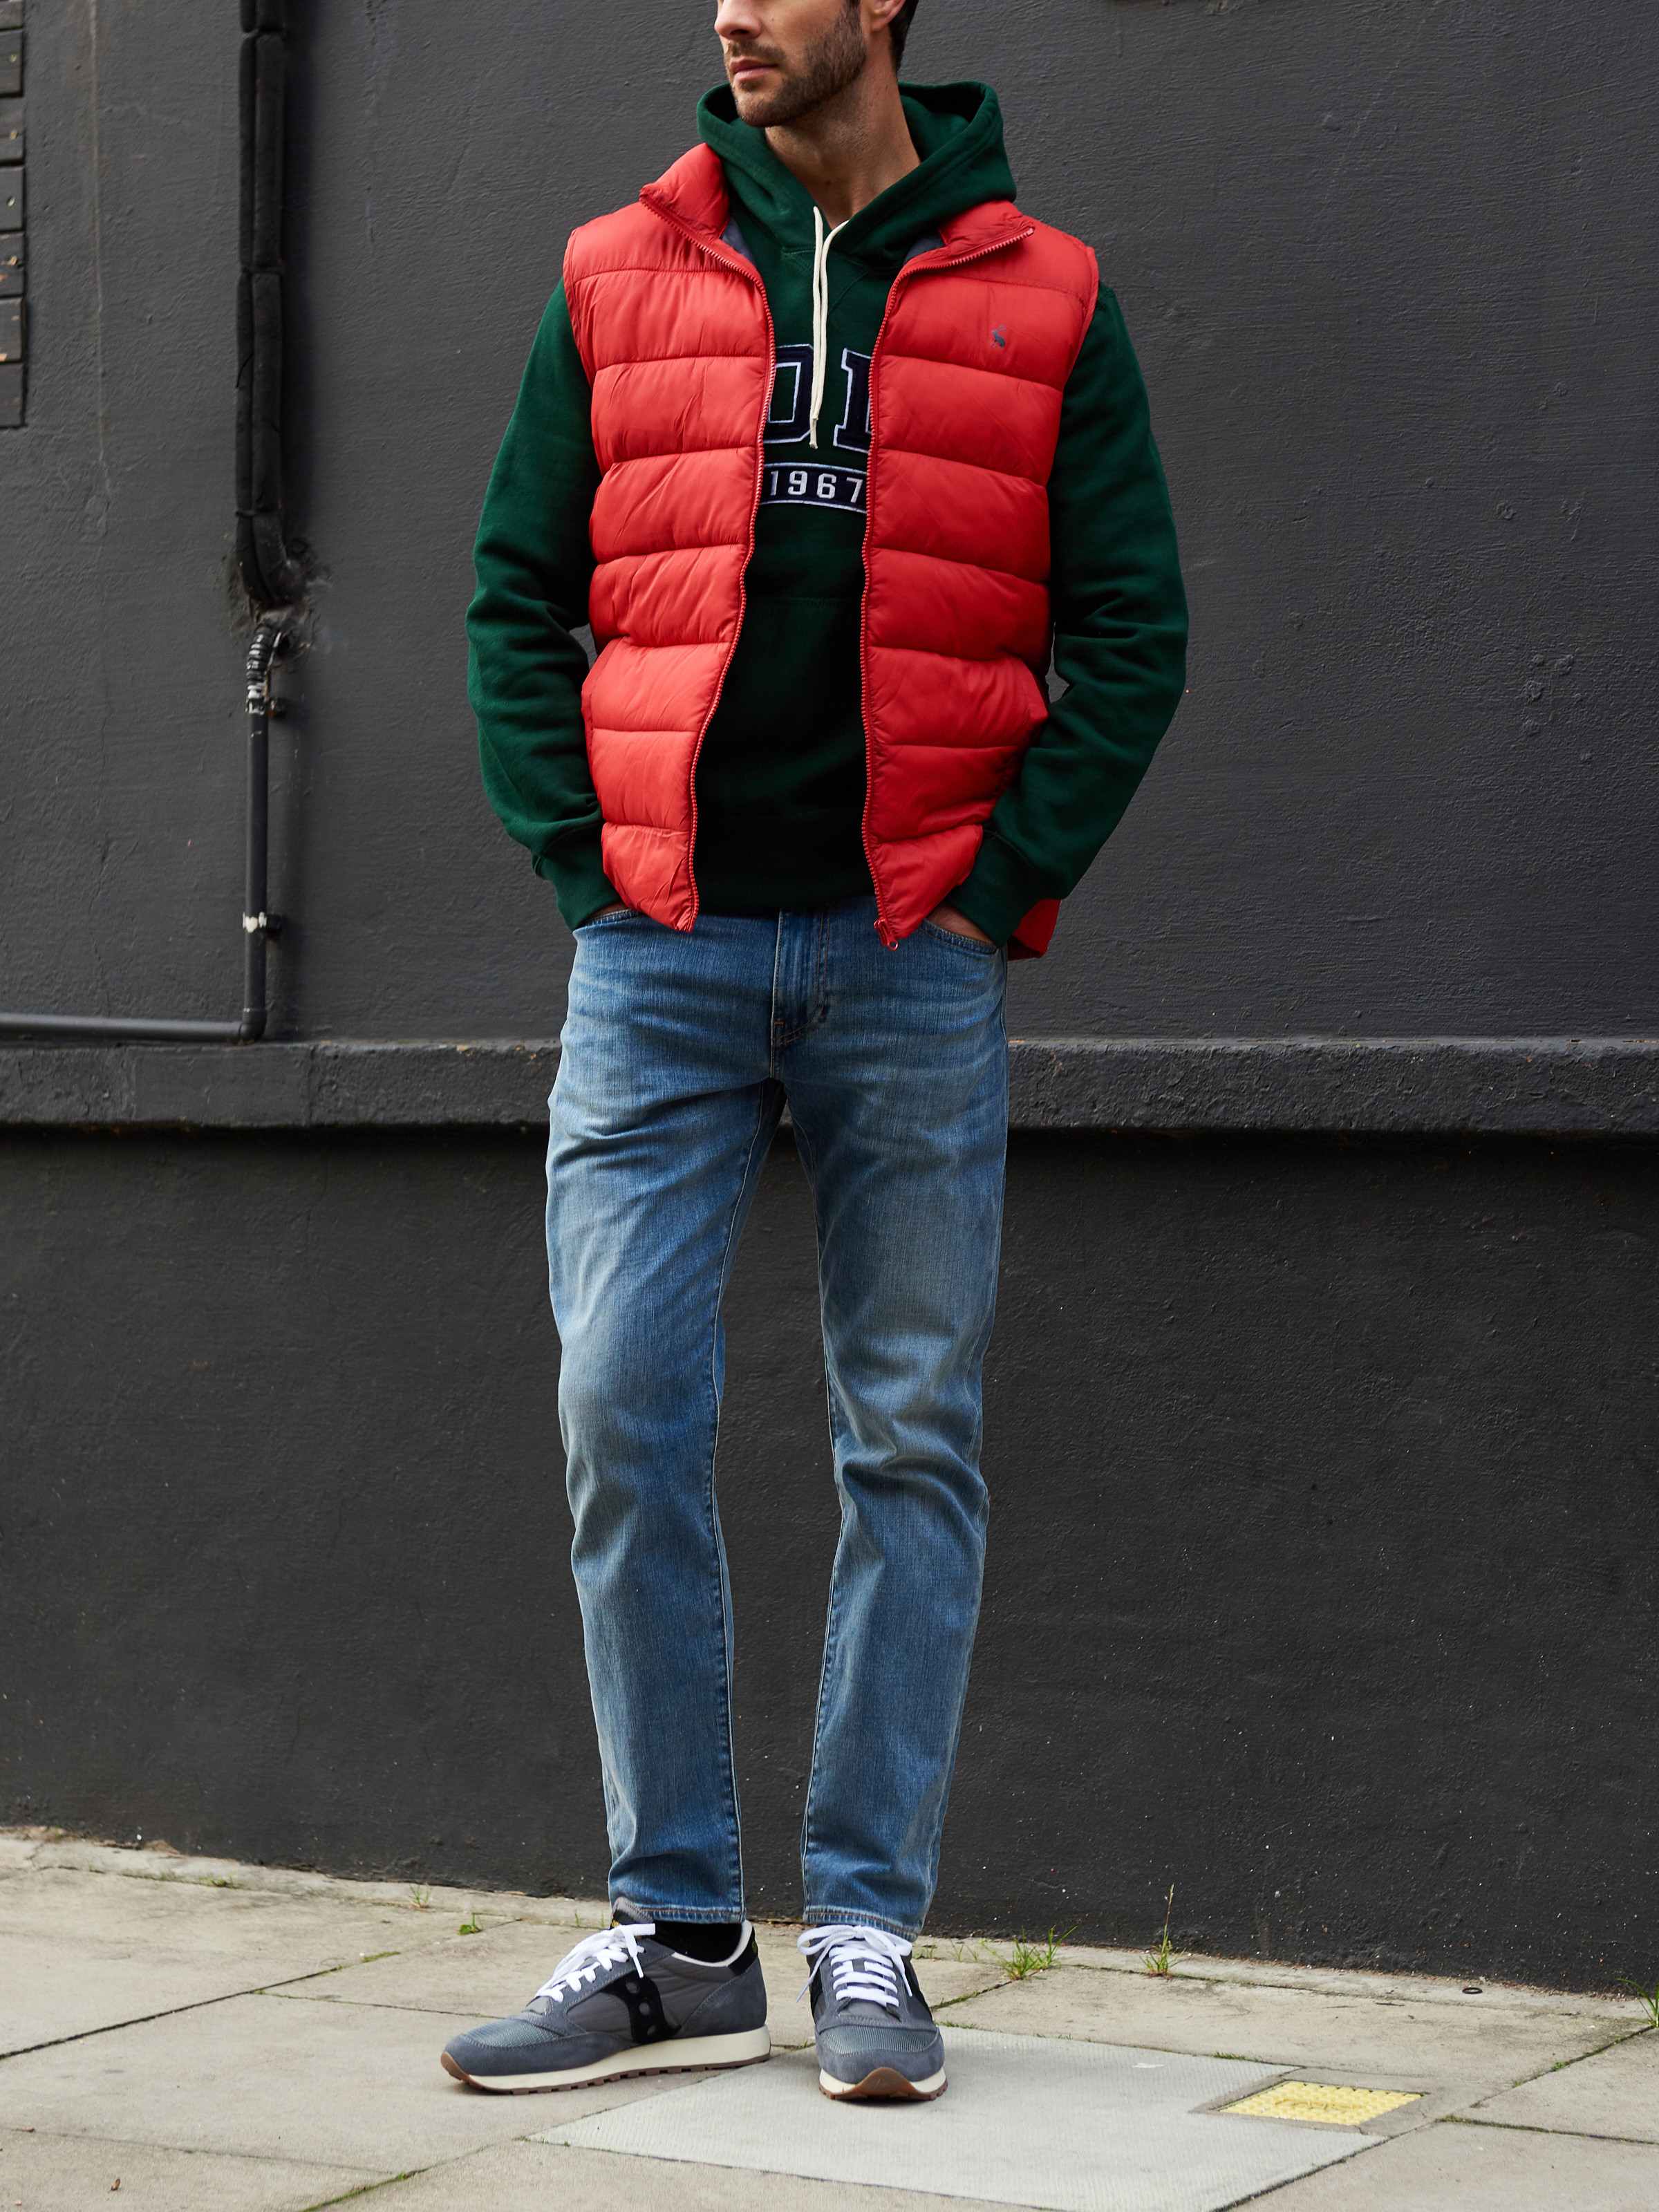 Men's outfit idea for 2021 with red vest, logo / printed hoodie, light blue jeans, neutral sneakers. Suitable for fall and winter.